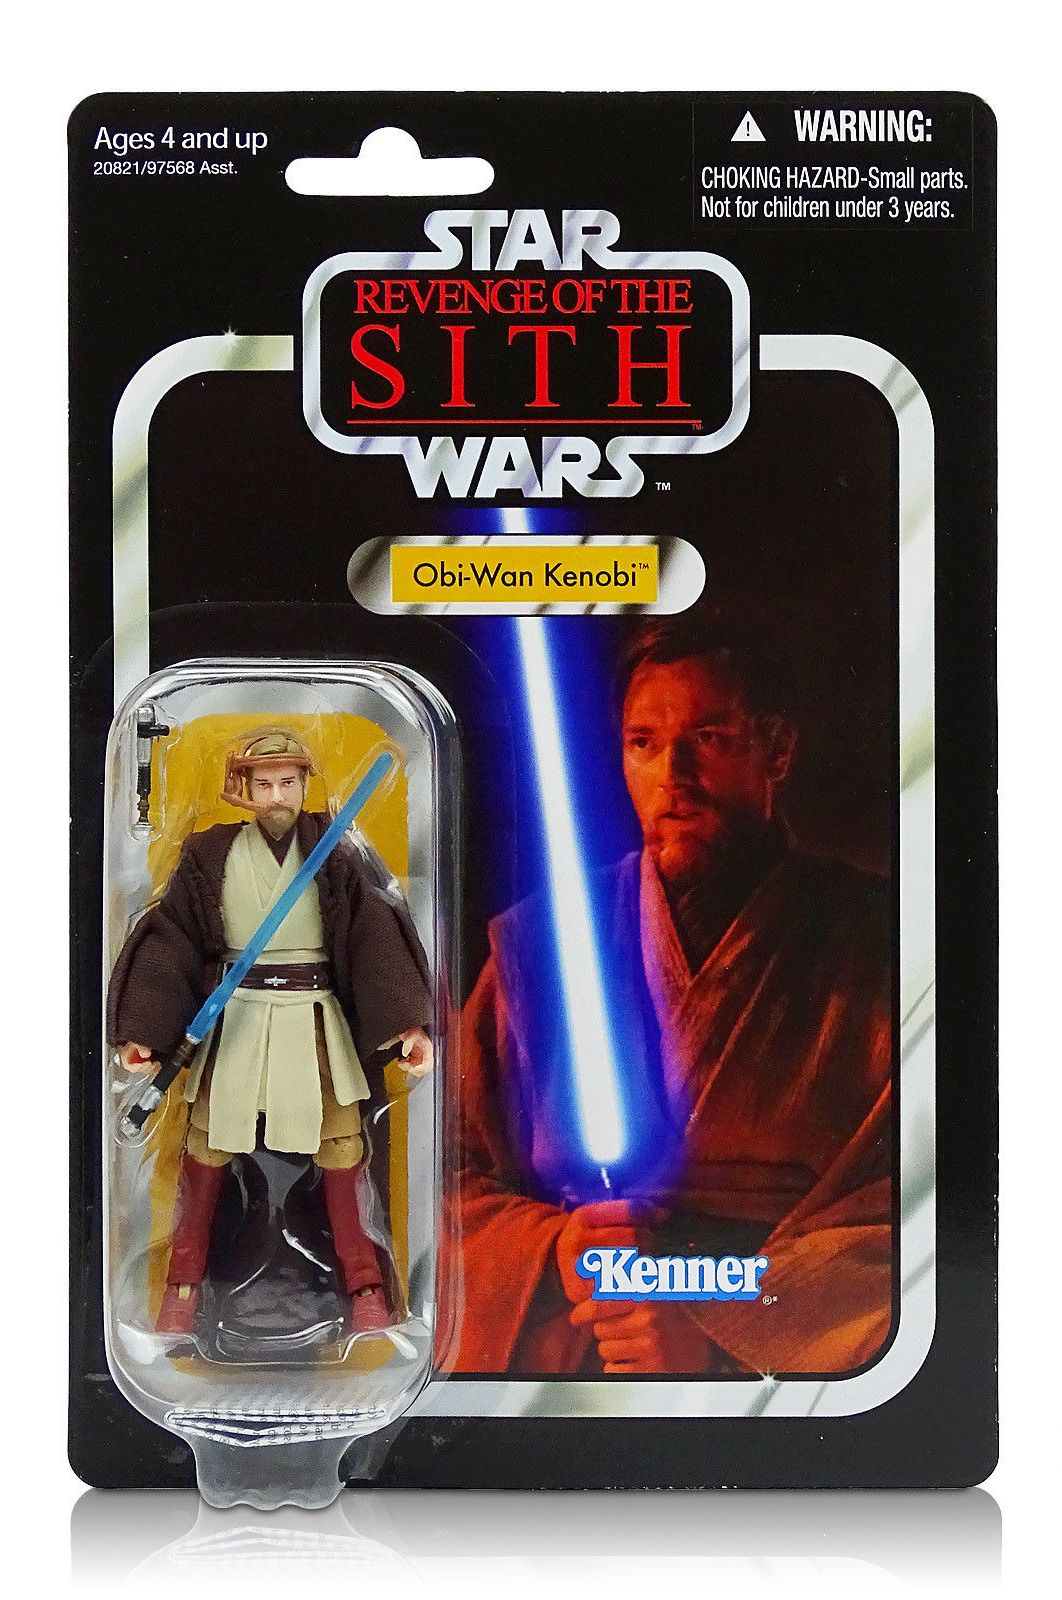 Obi Wan Kenobi Silver Foil Star Wars The Vintage Collection Revenge Of The Sith Series Vc16 Rare Vintage 2010 Now And Then Collectibles